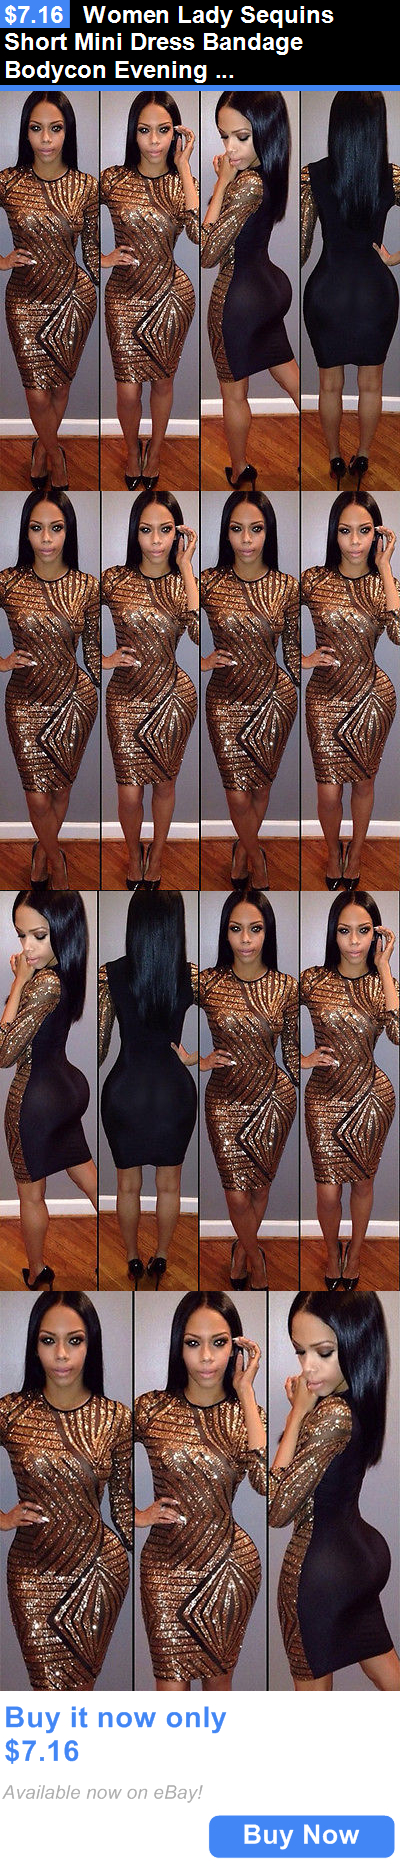 Clubwear: Women Lady Sequins Short Mini Dress Bandage Bodycon Evening Party Cocktail Club BUY IT NOW ONLY: $7.16